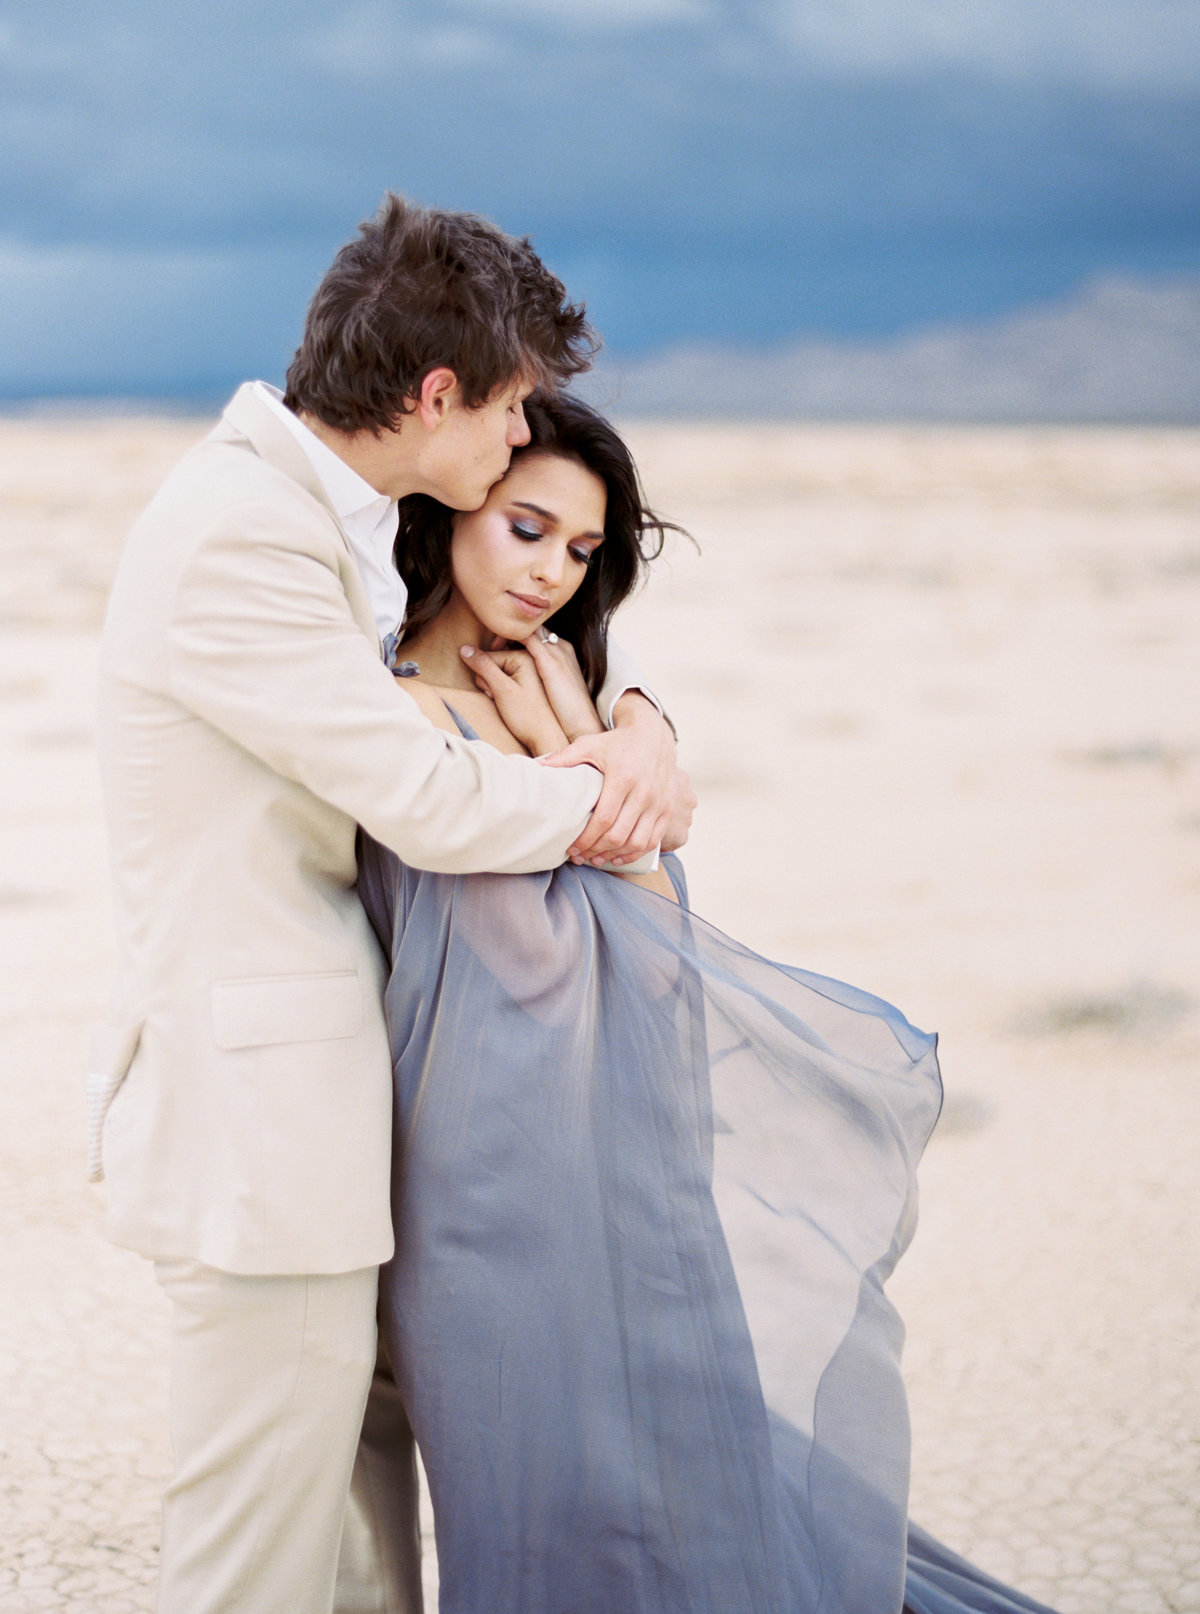 philip-casey-photography-desert-oasis-editorial-session-10